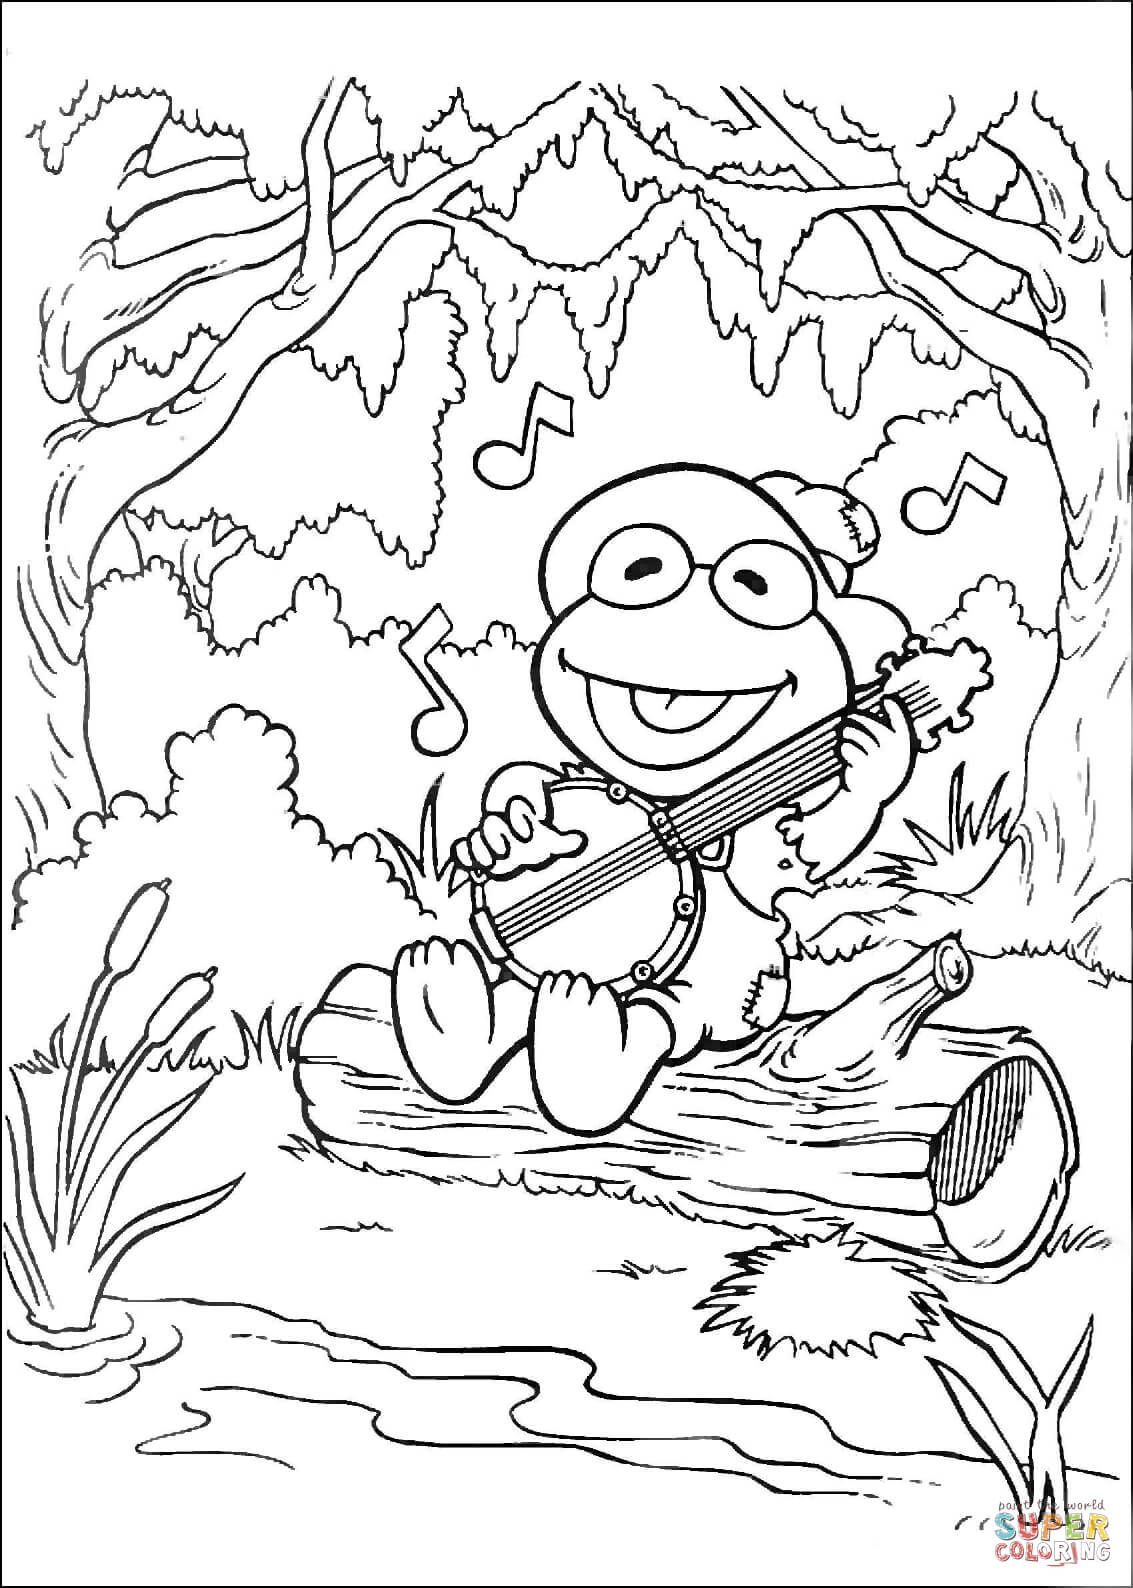 Kermit Sings A Song Coloring Page